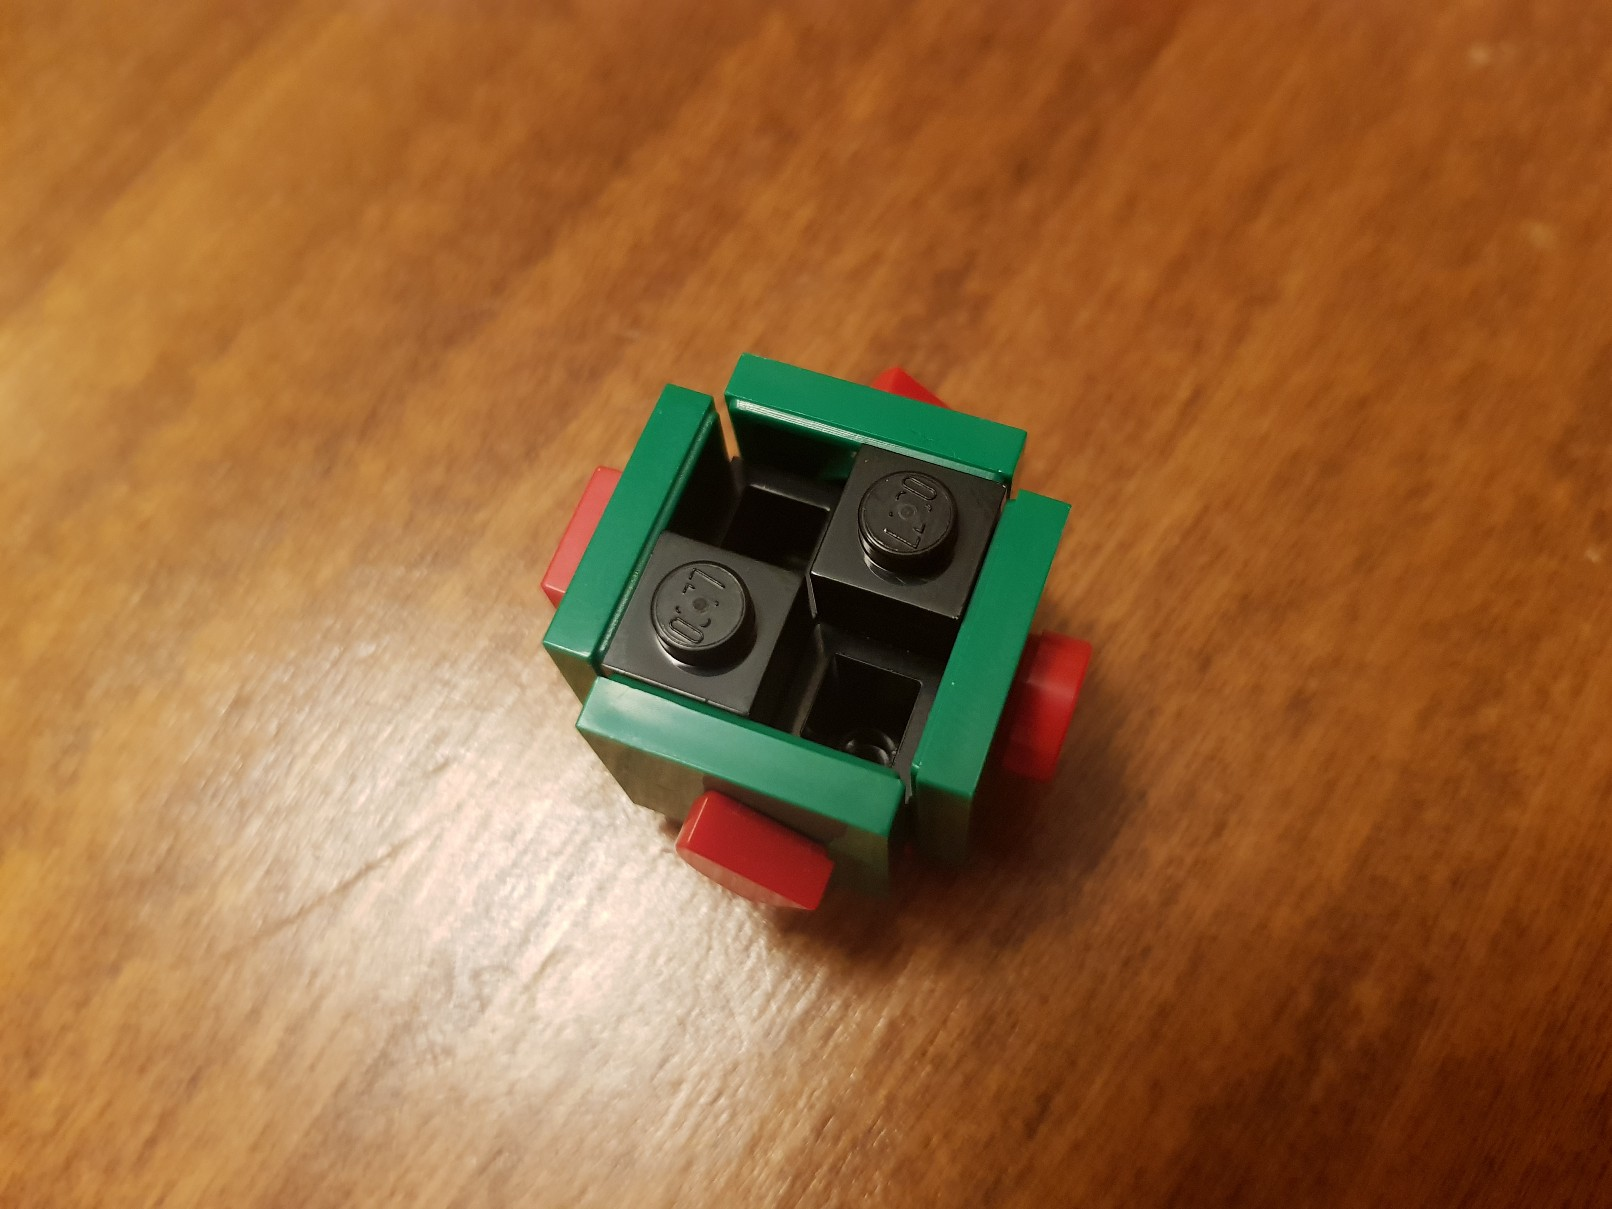 lego moc christmas baubles ornament small ball parts 3